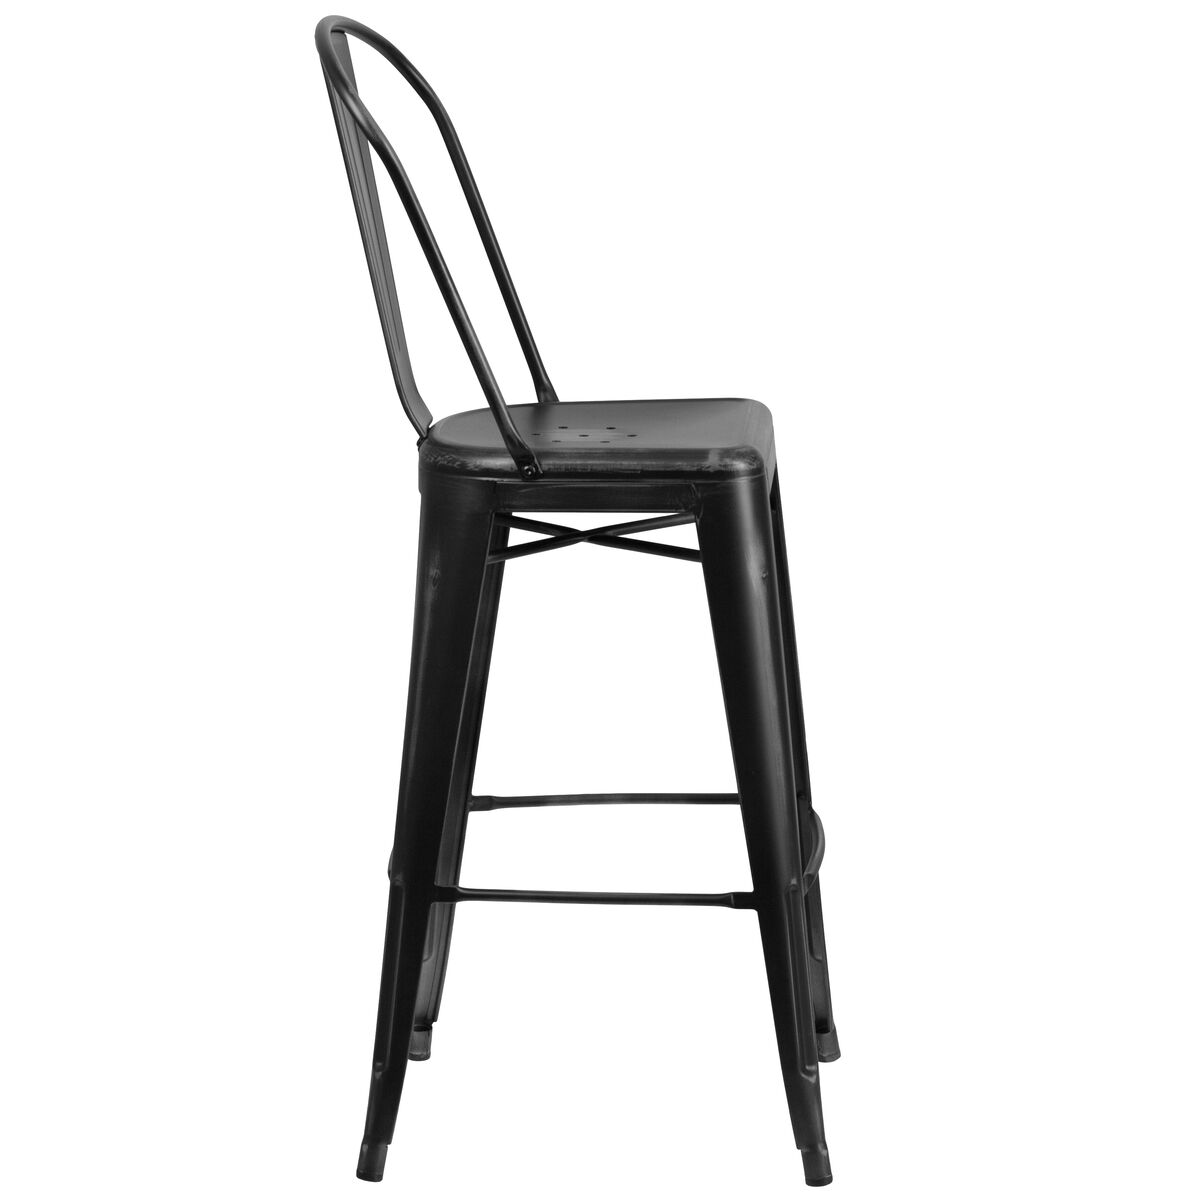 Our 30 High Distressed Black Metal Indoor Outdoor Barstool With Back Is On